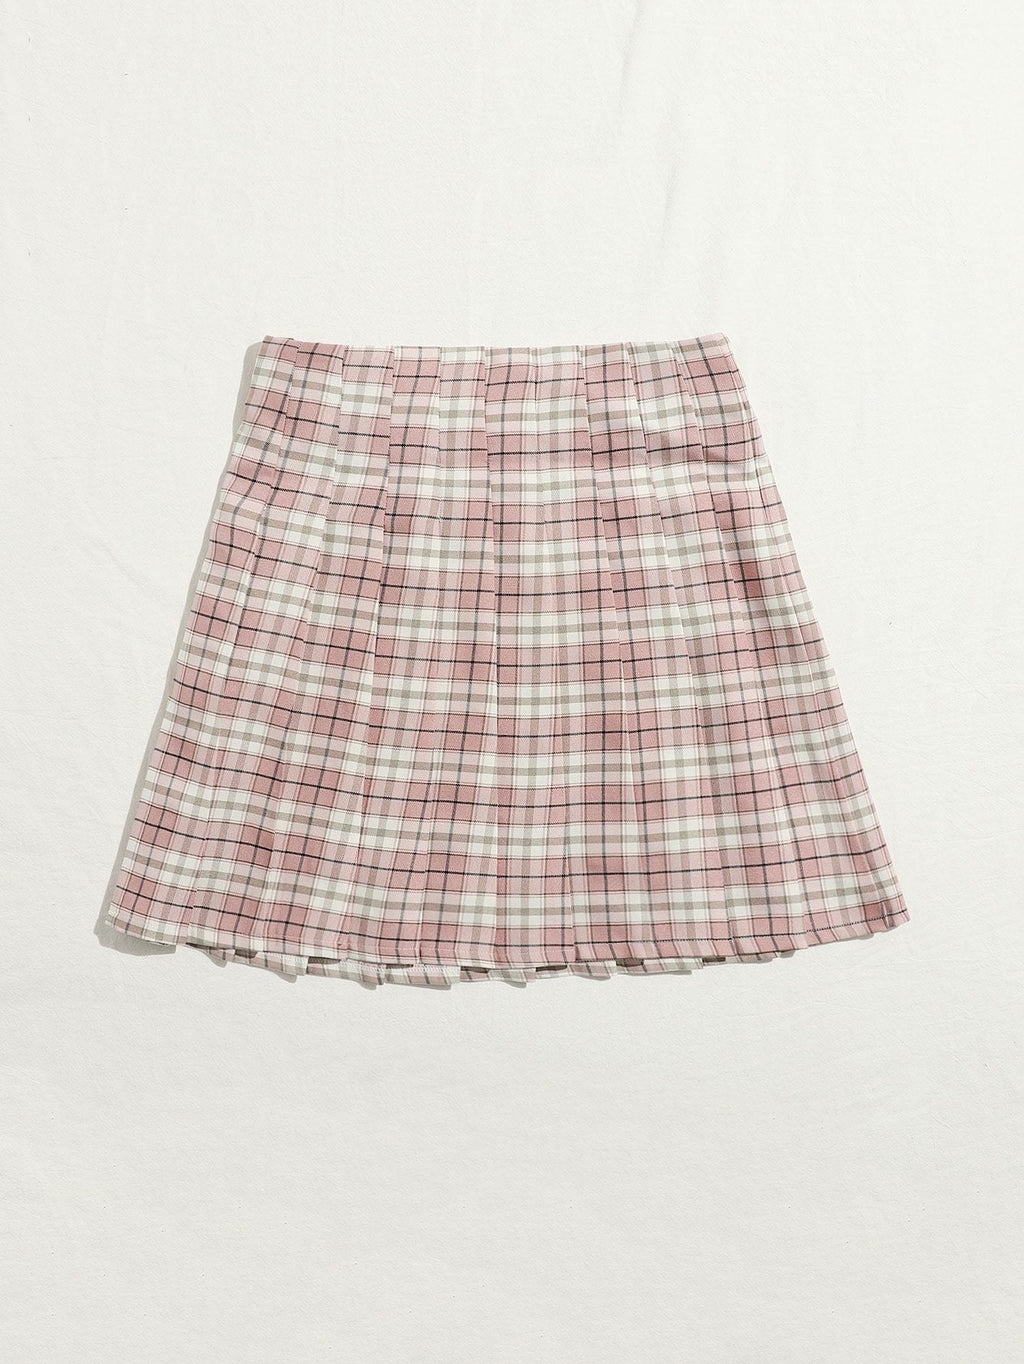 Plus Tartan Pleated Skirt - INS | Online Fashion Free Shipping Clothing, Dresses, Tops, Shoes